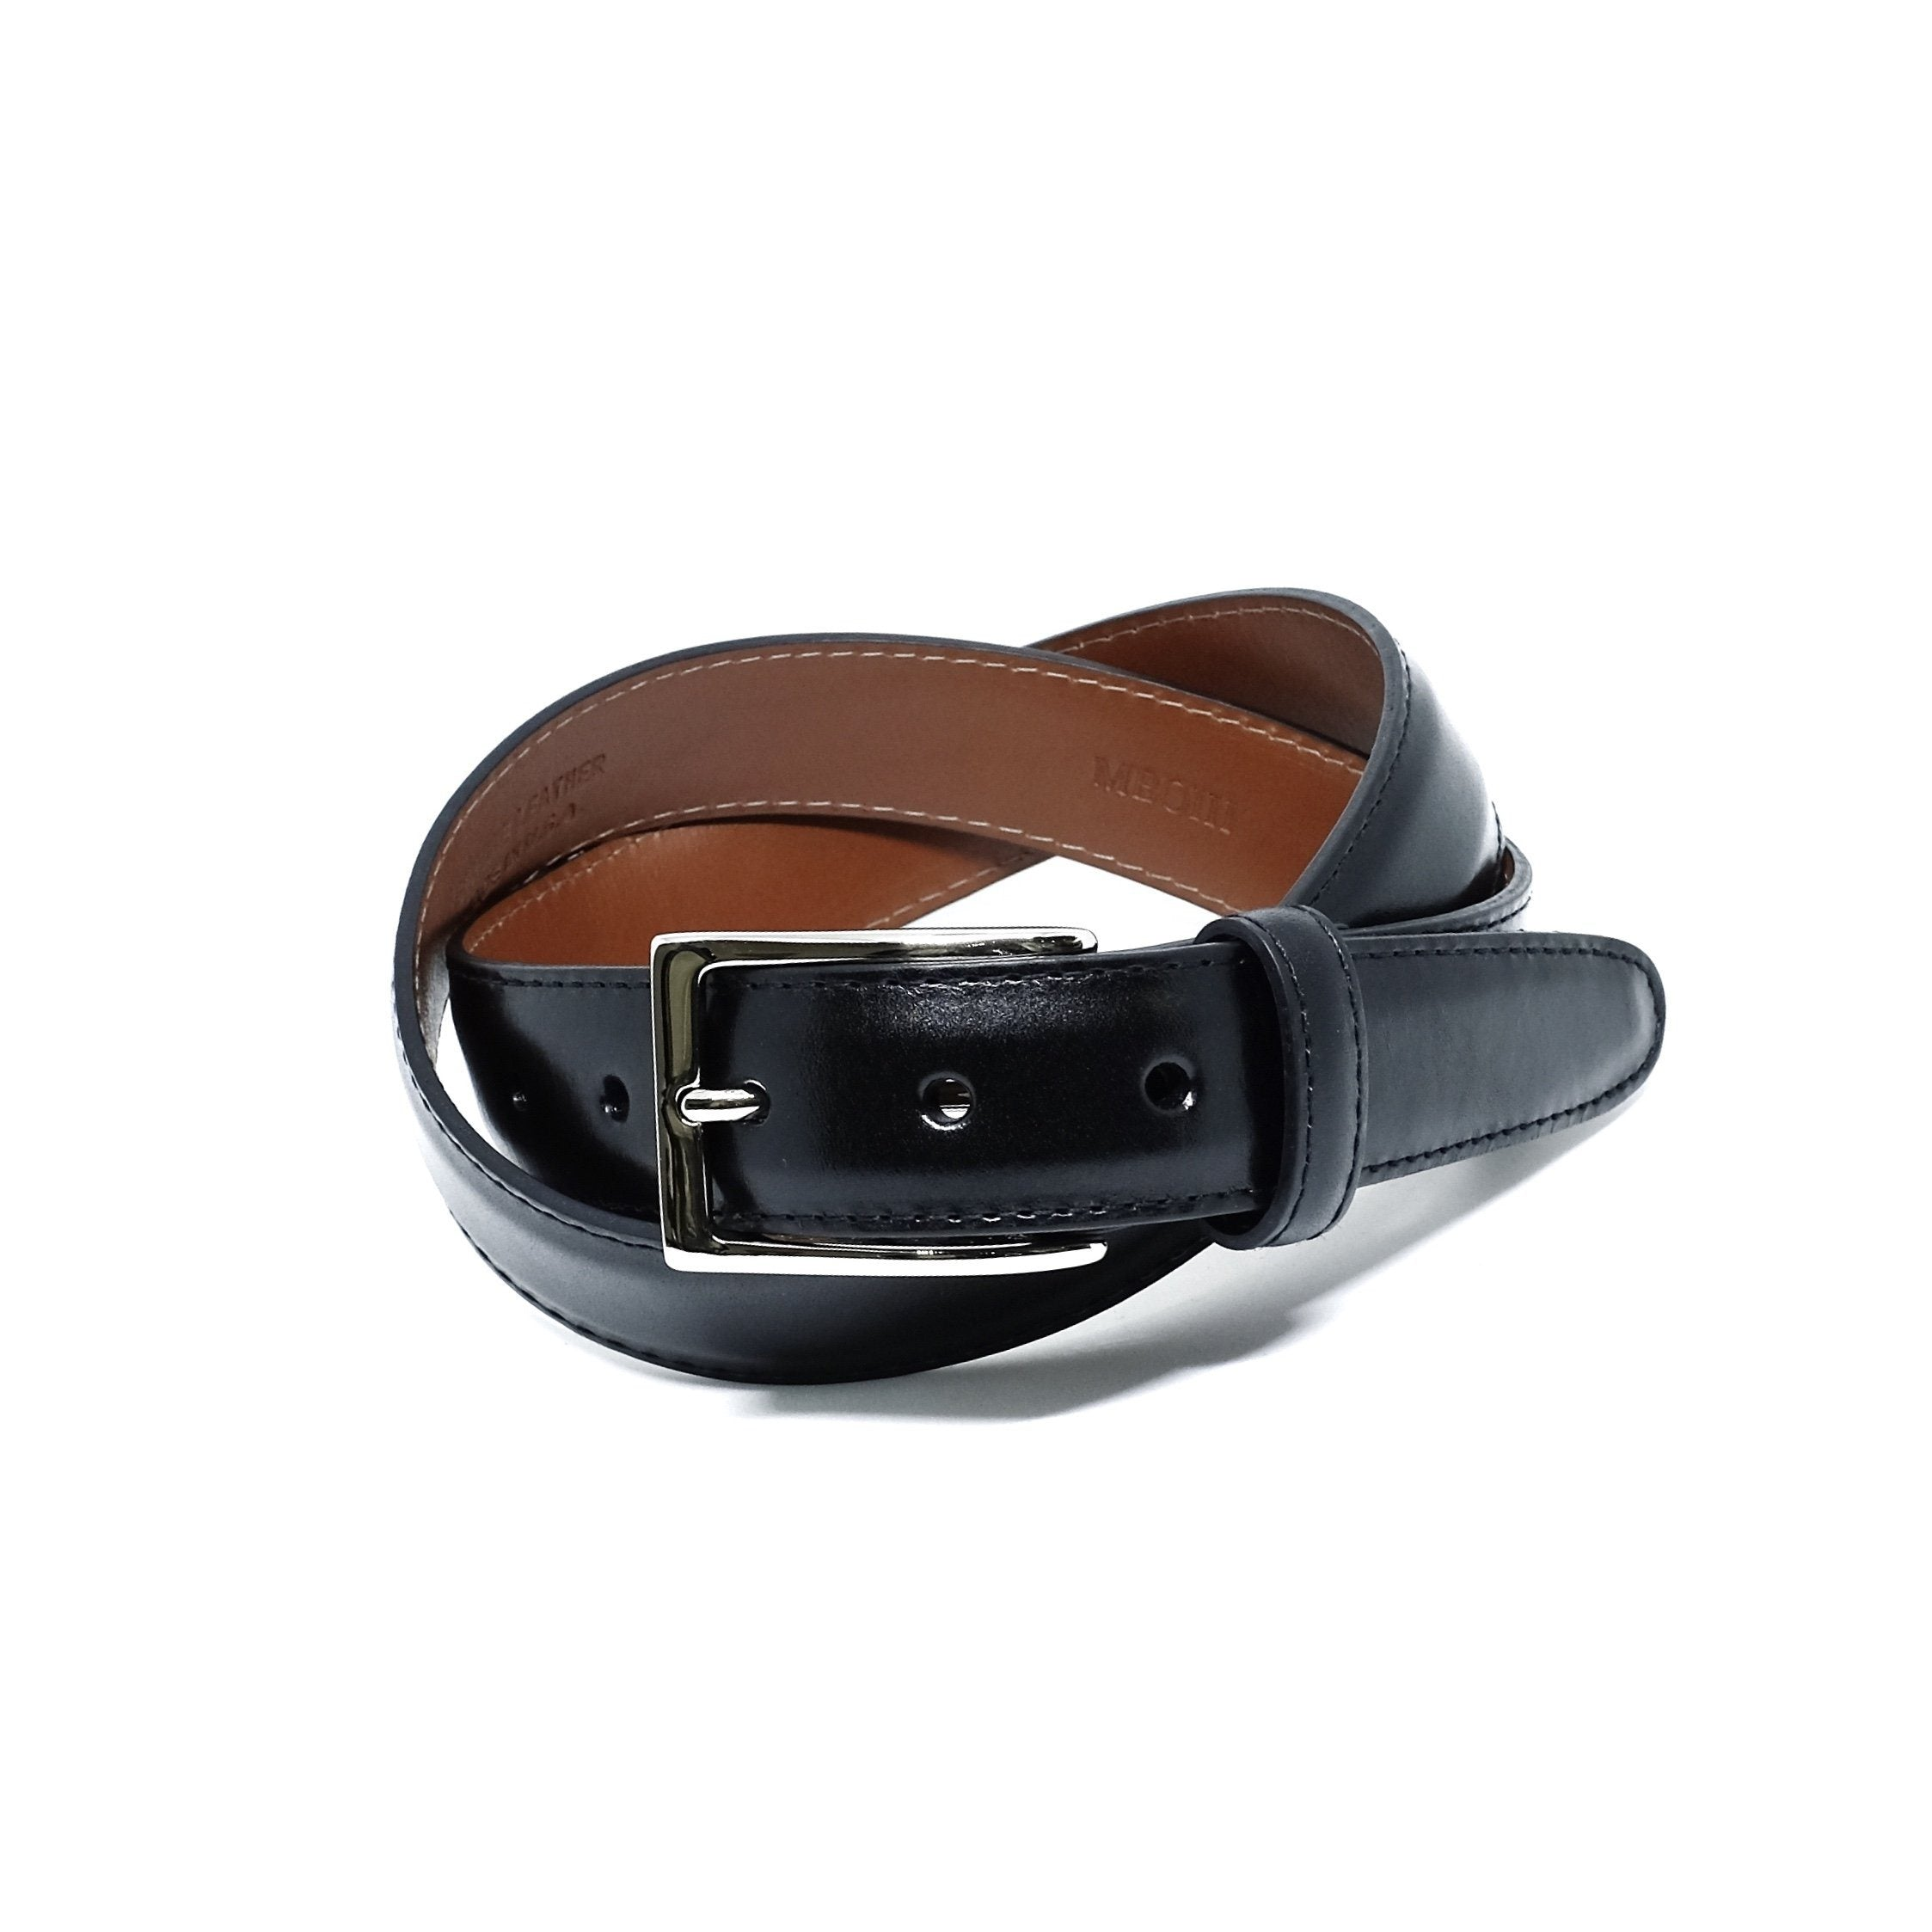 ALDEN MB0111 Black Calf Belt & Buckle